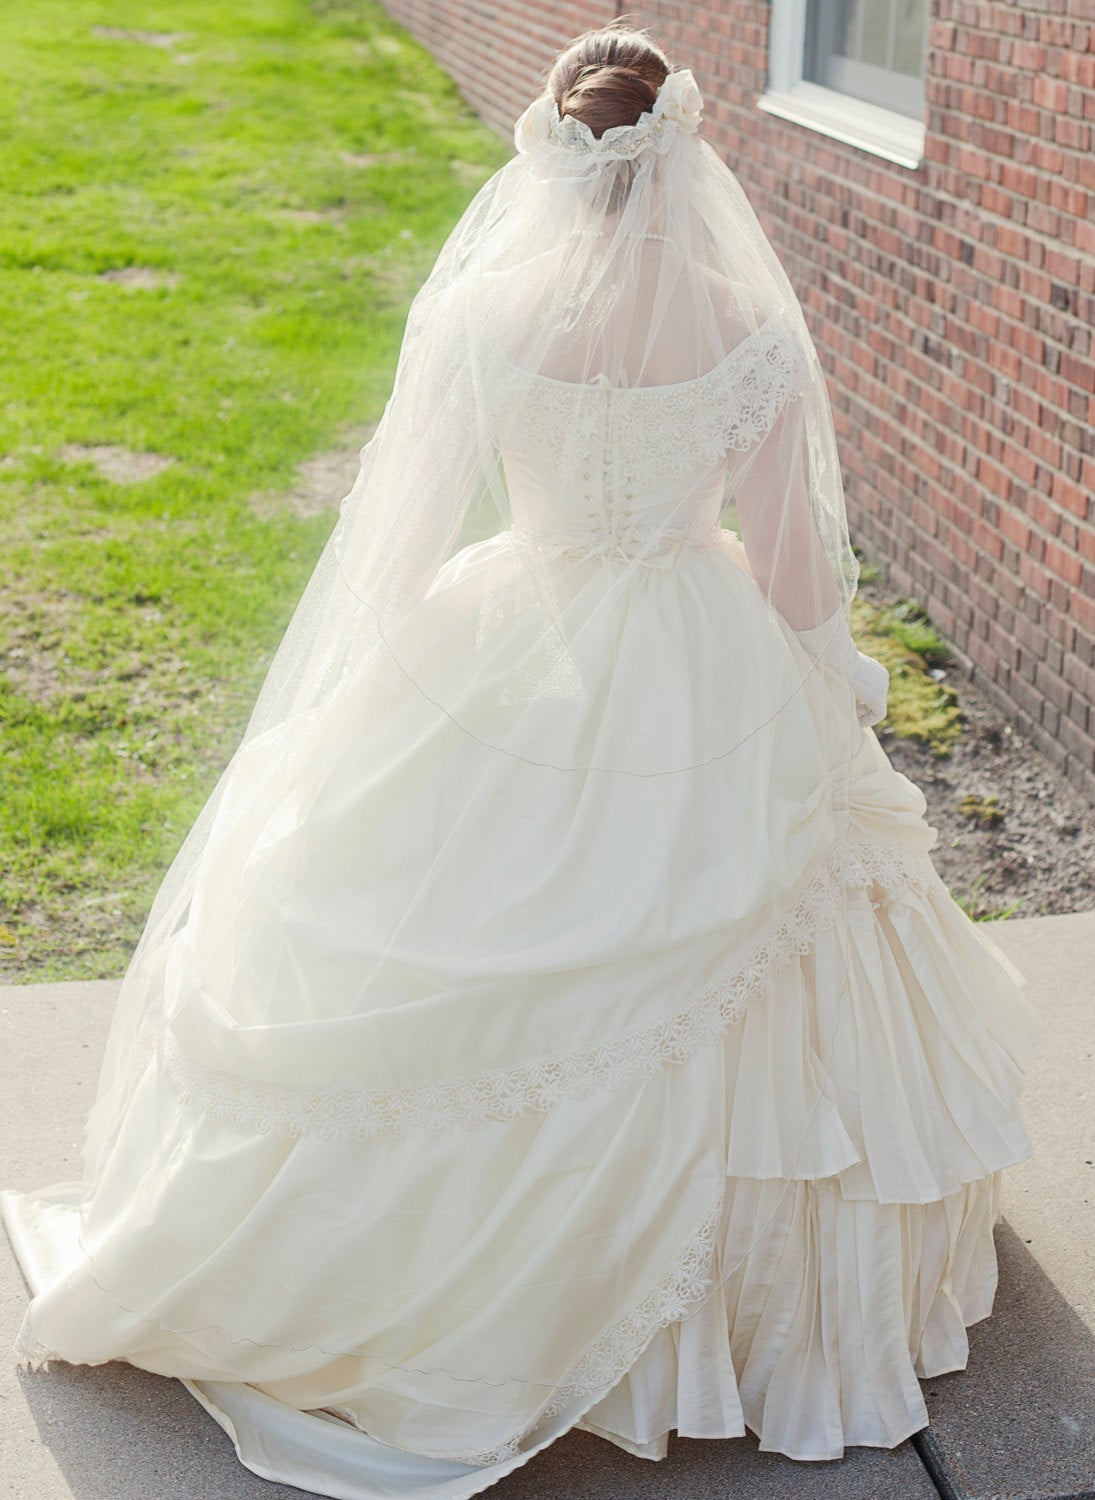 Bridal Wedding Victorian Civil War Steampunk Gown Dress includes veil